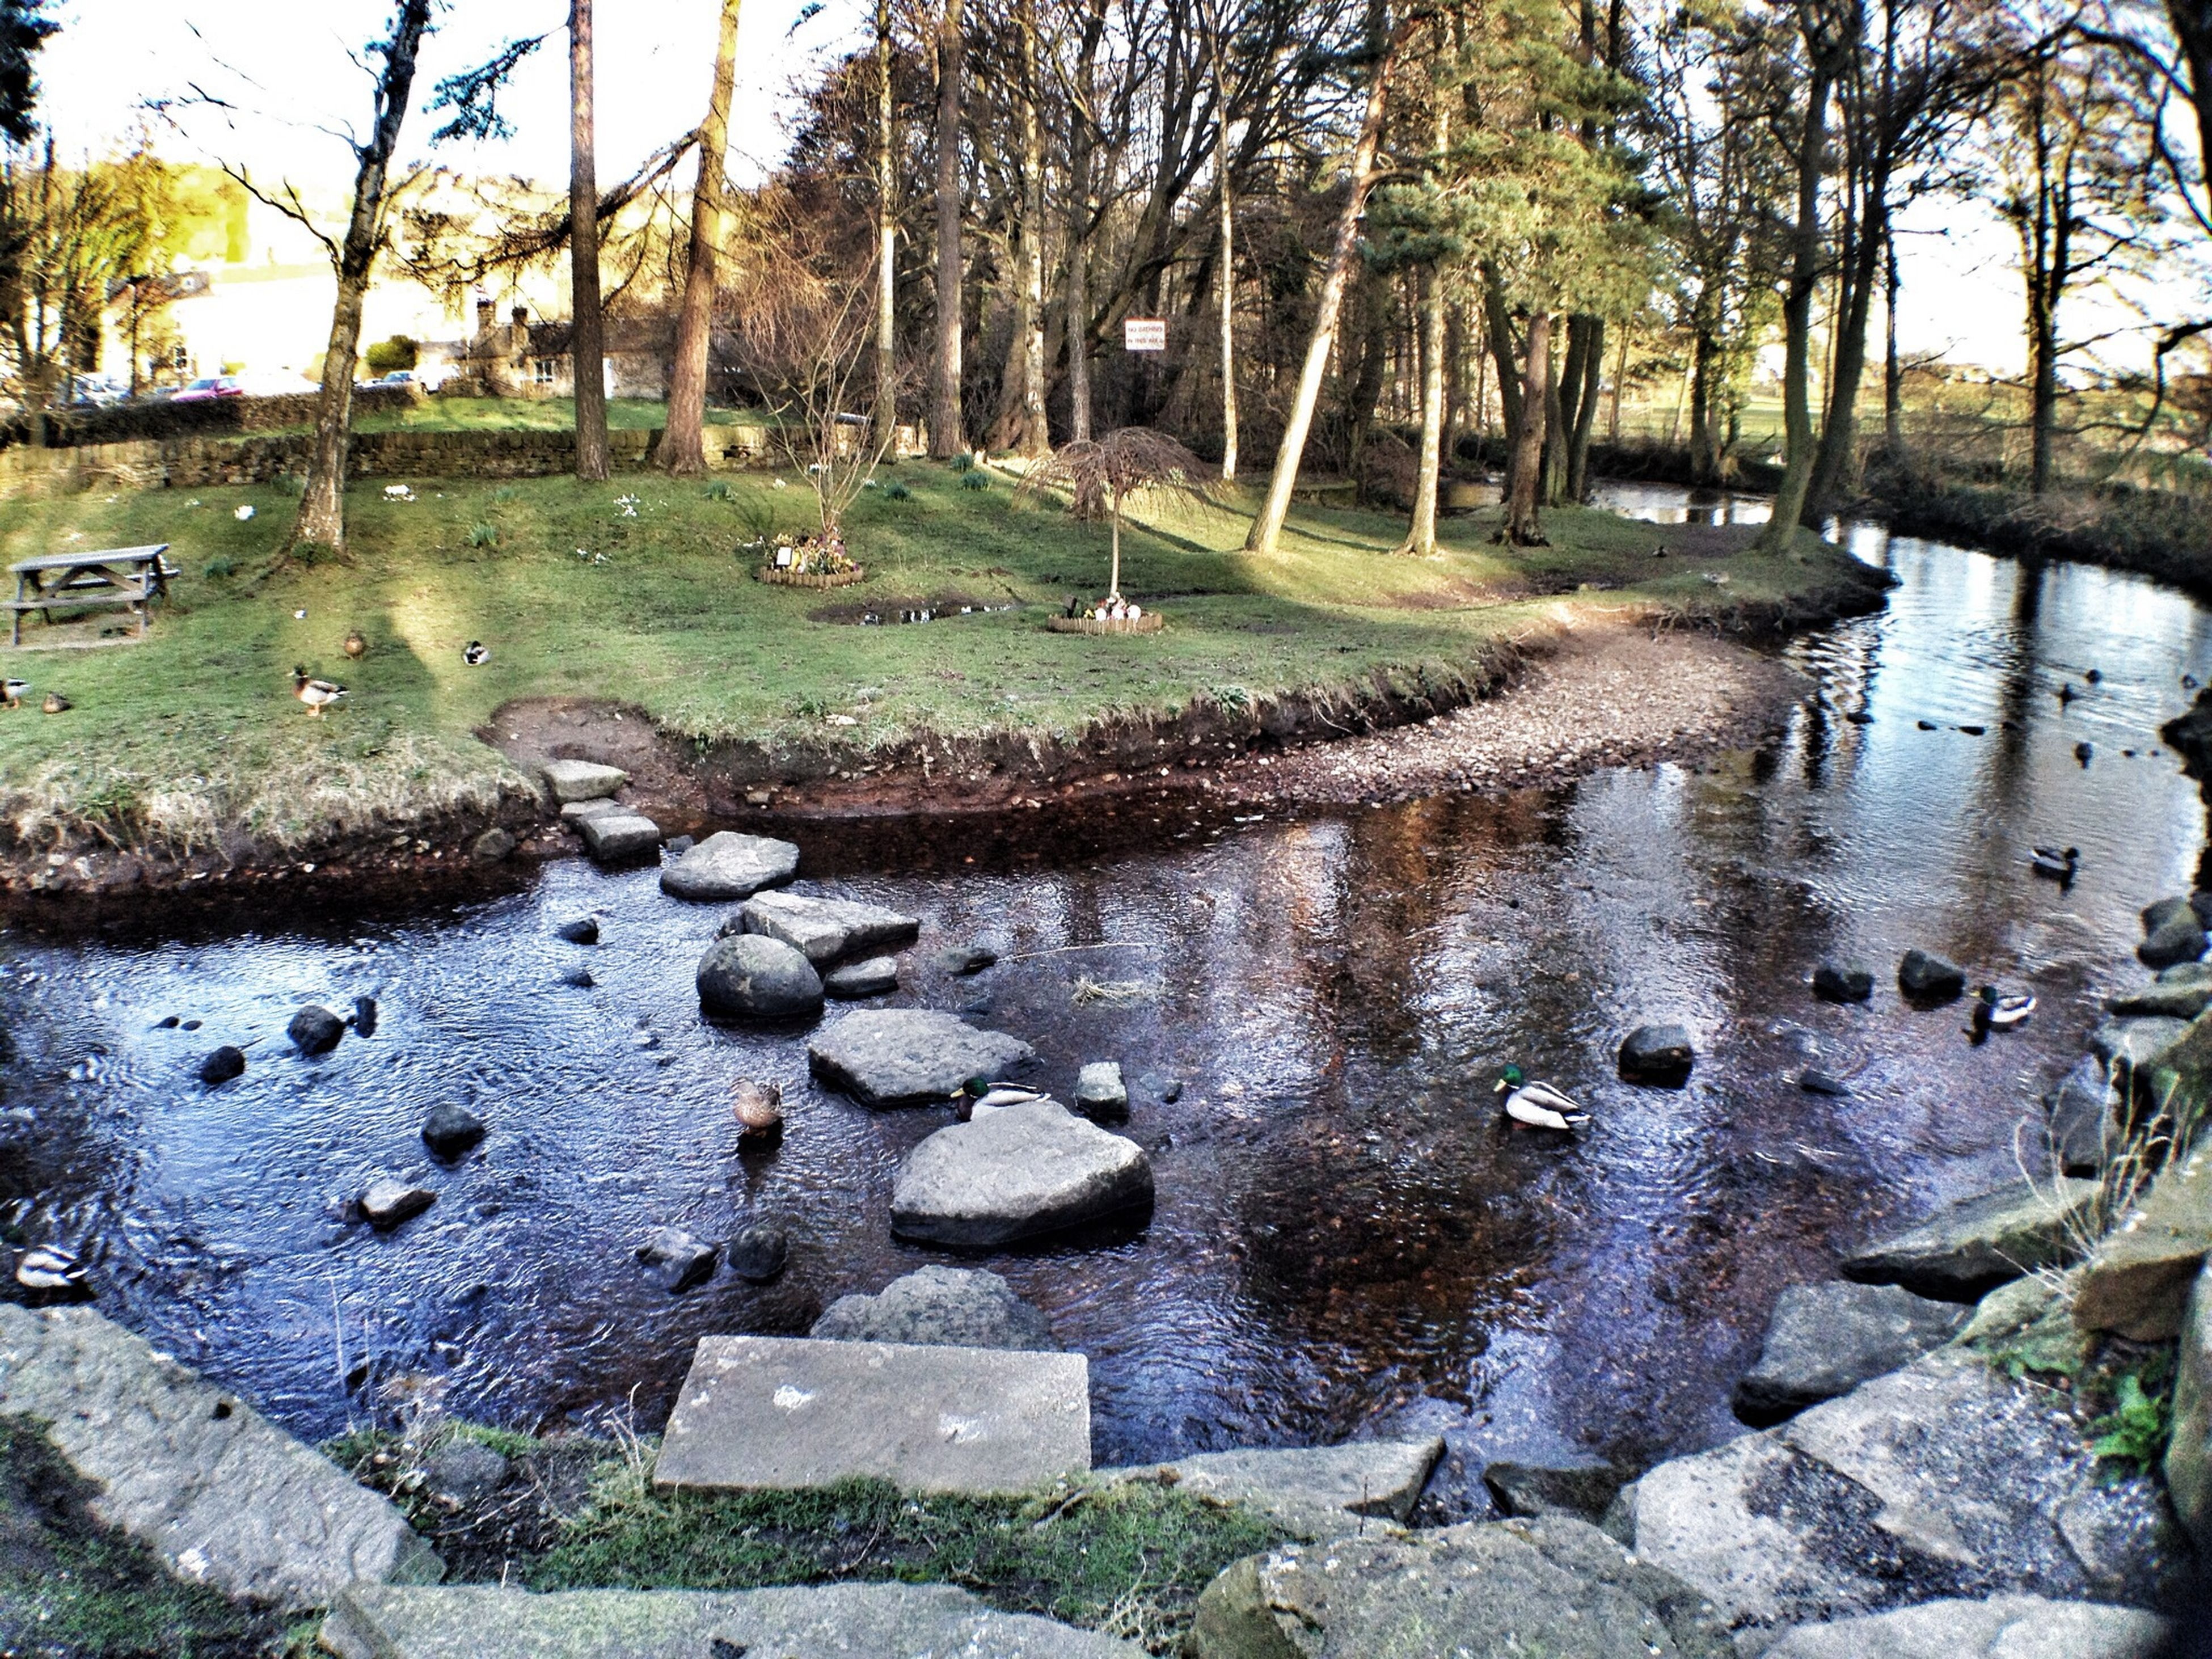 water, tree, animal themes, stone - object, nature, stone, rock - object, lake, river, day, tranquility, wildlife, outdoors, reflection, no people, stream, animals in the wild, built structure, pond, riverbank